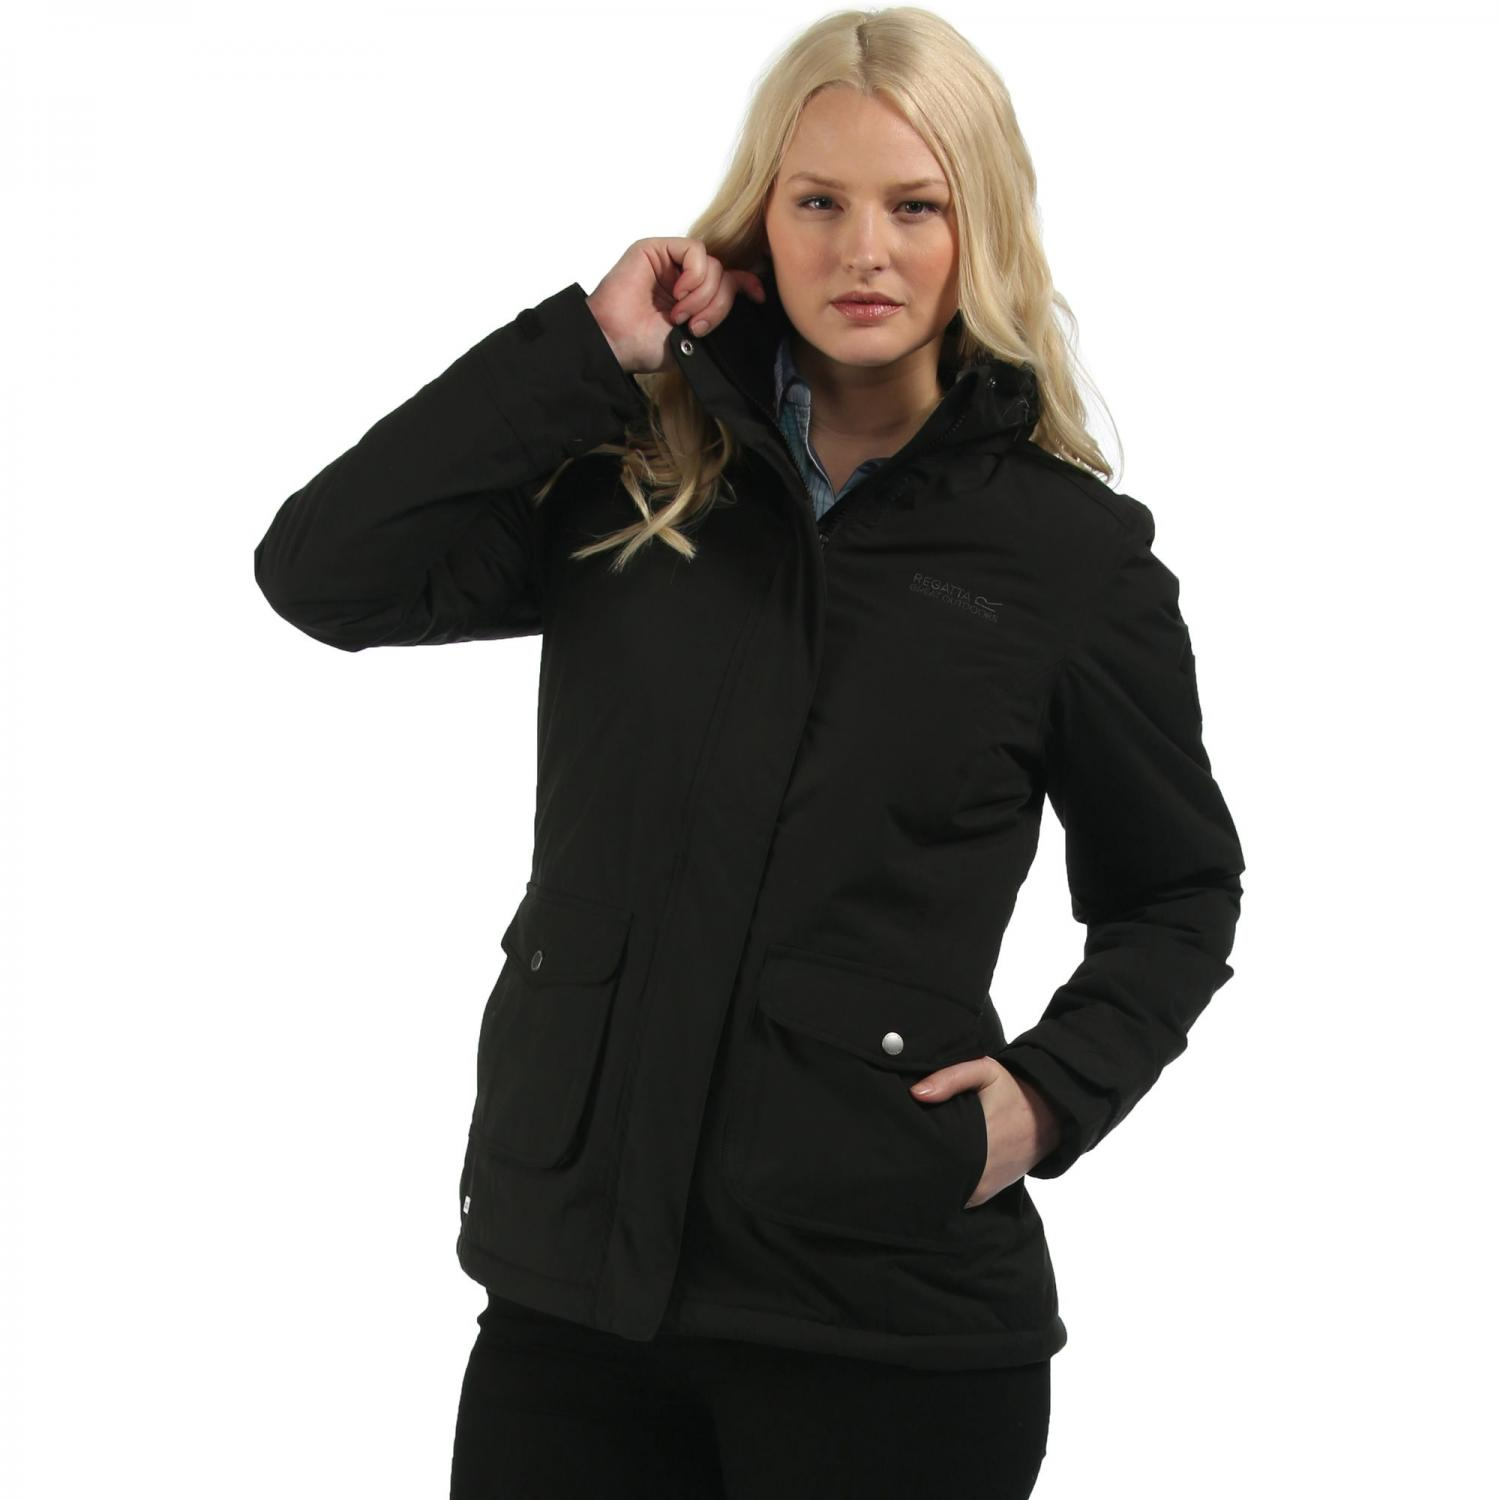 Solandra Jacket Black